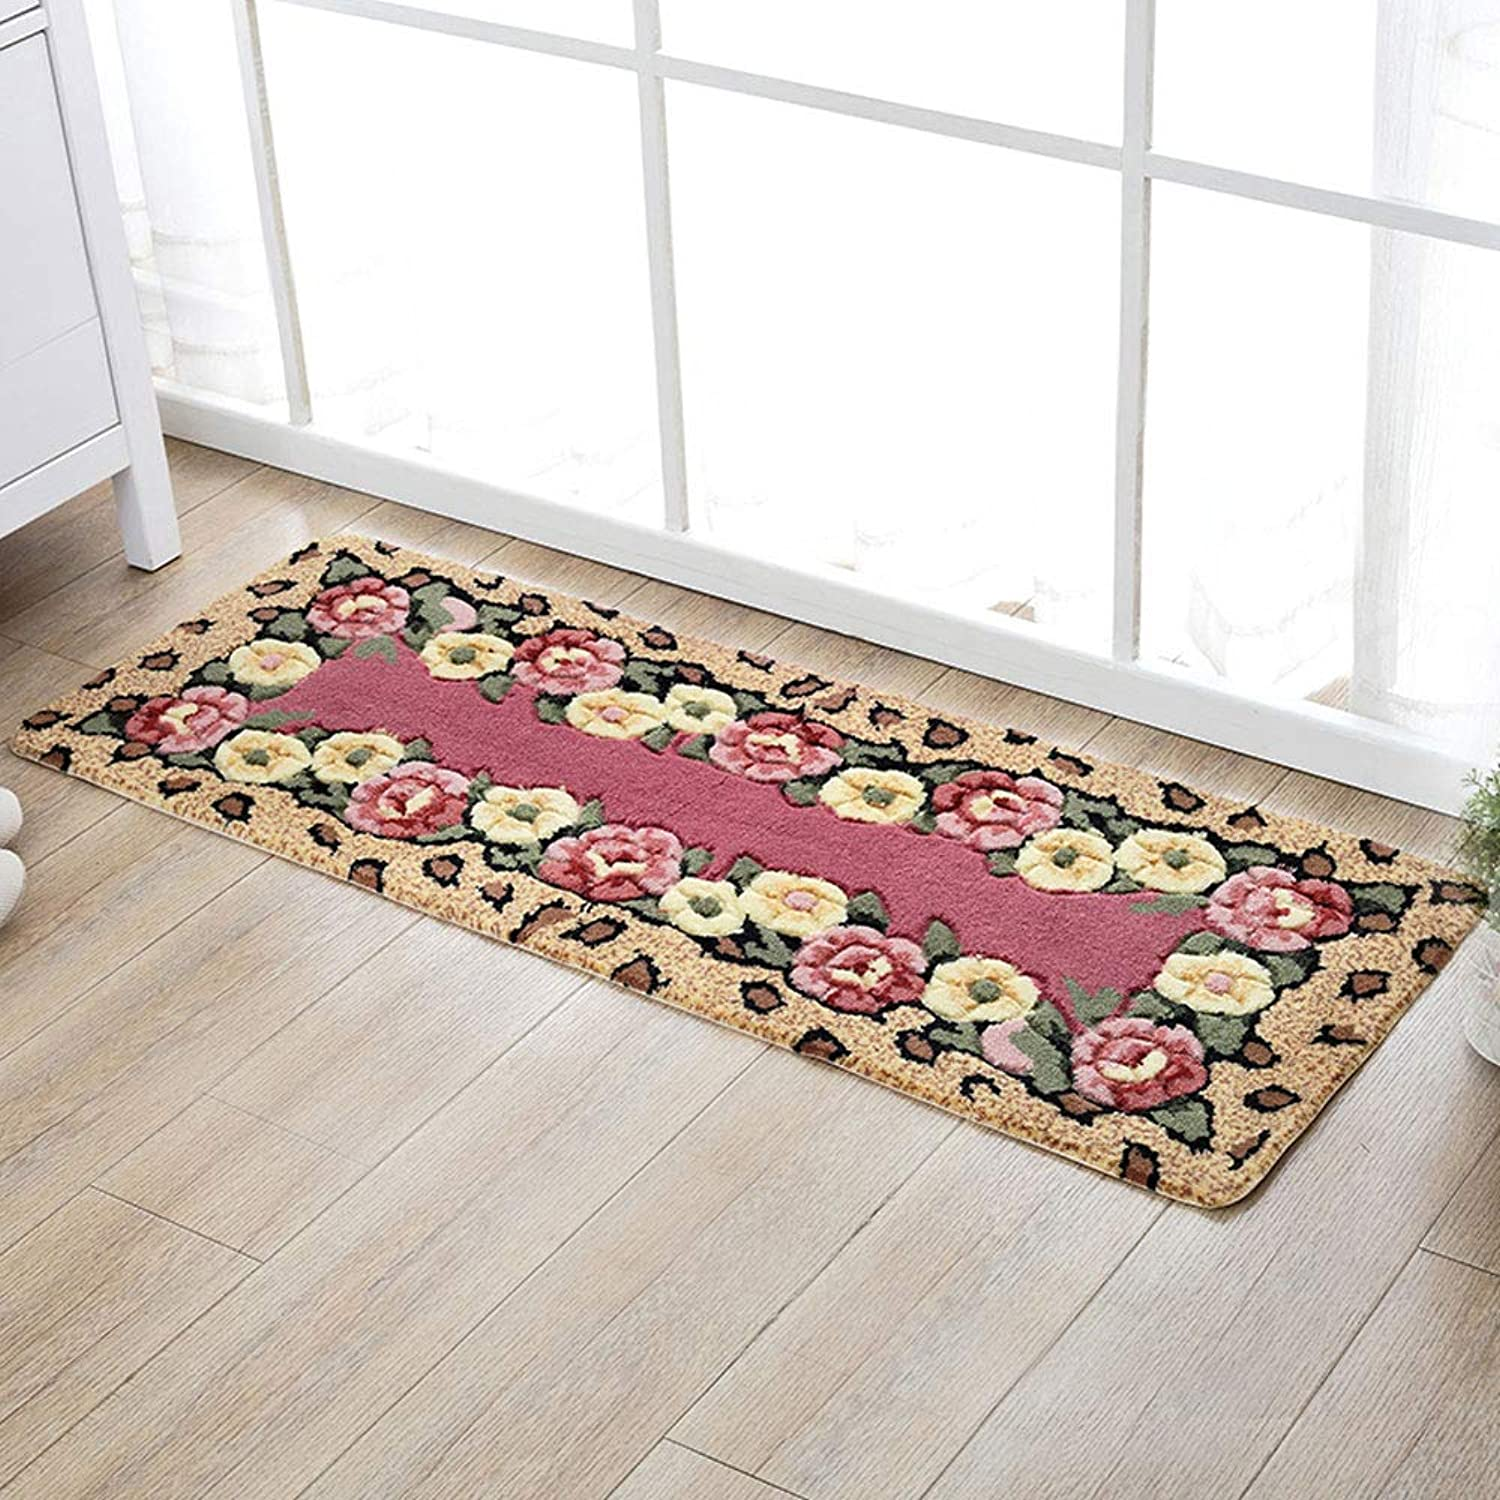 XF Doormats Door Mat Kitchen Mat Long Strips Oil Absorption Anti-Slip Mat Mat Bed Bed Mat Bathroom Door Mat Hallway Furniture (color   B, Size   45X65cm)